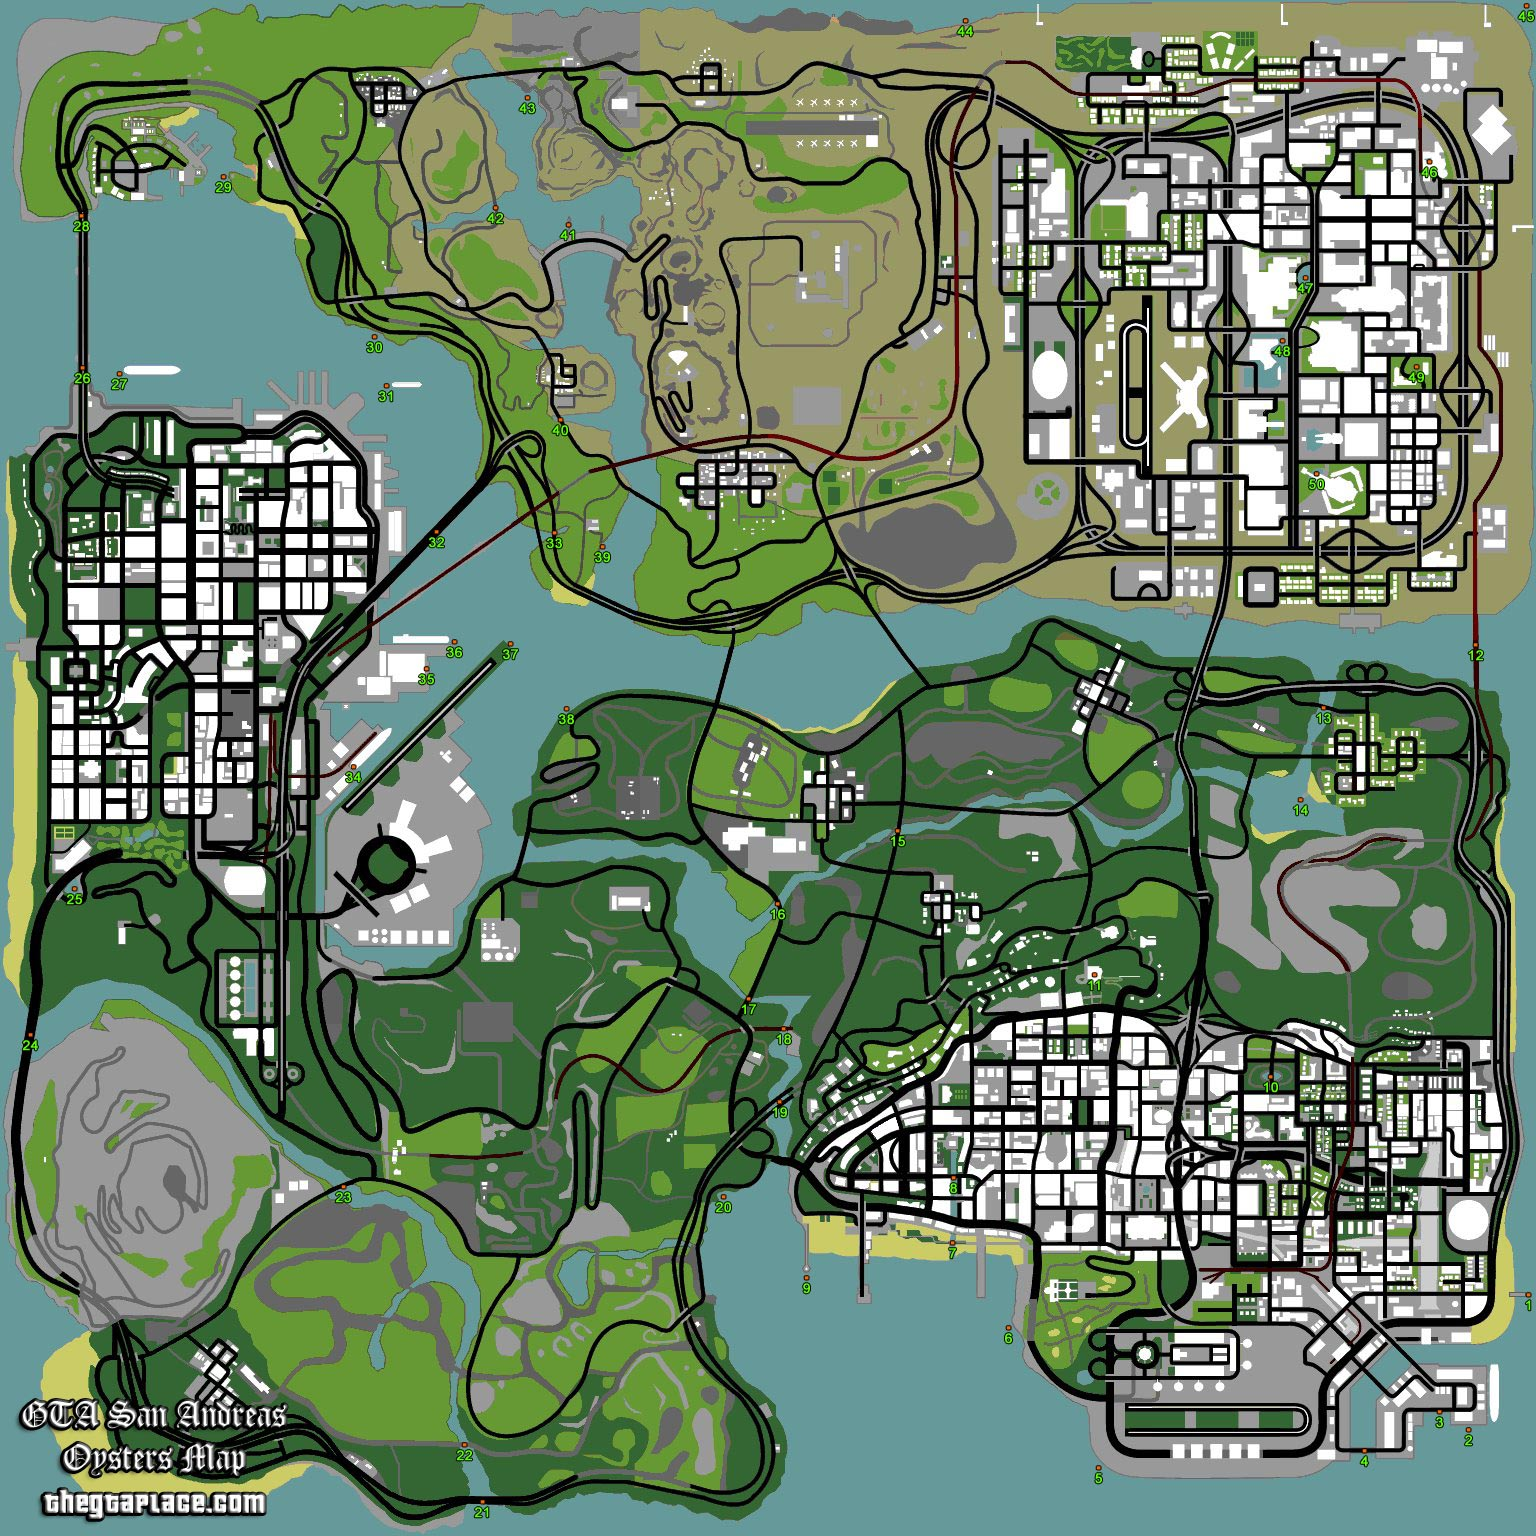 GTA San Andreas hidden package location maps - Gallery | eBaum's World